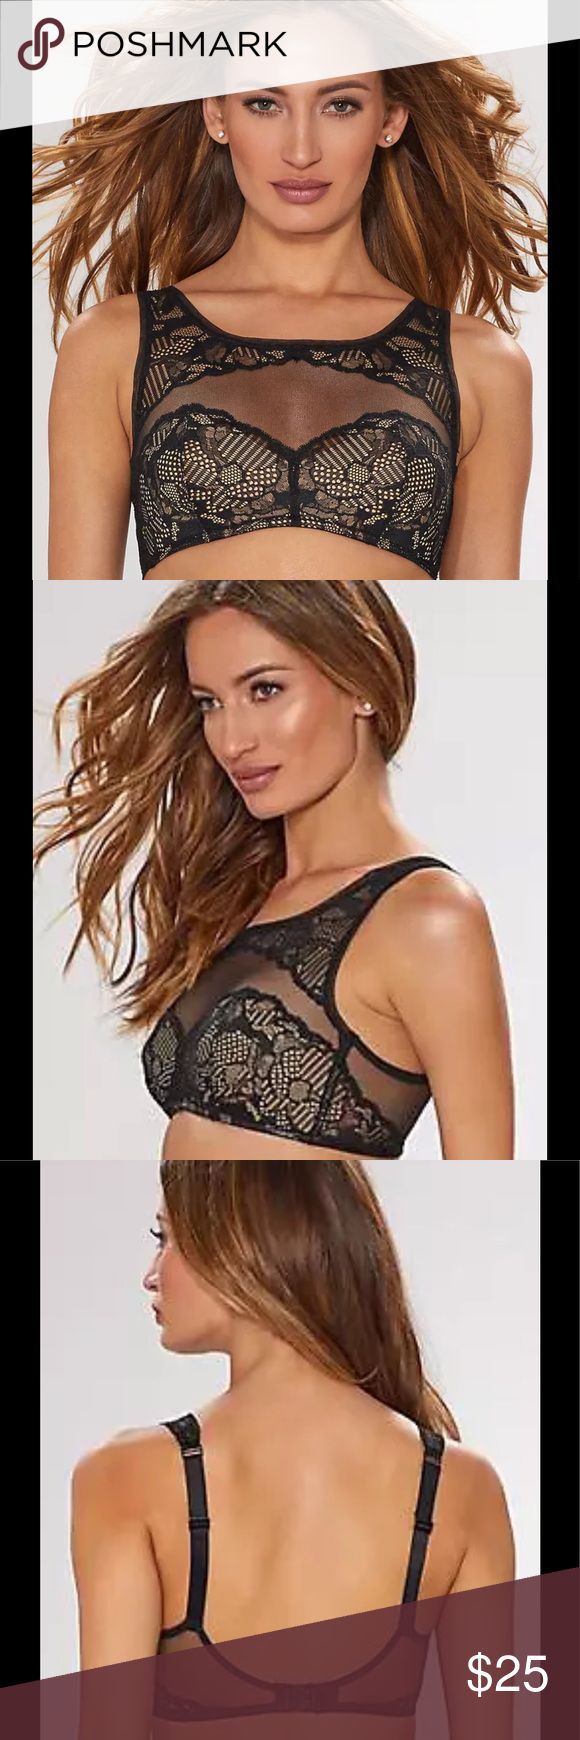 Calvin Klein Linger bralette ❤️💐💕 Calvin Klein Bra Black Floral Lace Wireless Bralette High Neckline Size Medium NEW Retail Price $58.00 ·      This beautiful, romantic and delicate bra in soft floral lace with a high neckline too pretty to cover up. Soft cups Wireless ·      Floral lace elevates this bralette for a semi-sheer look. ·      Illusion boatneck. ·      Adjustable spaghetti straps. ·      Back hook-and-eye closure. ·      Lightly lined ·      Nylon/elastane ·      Hand wash…